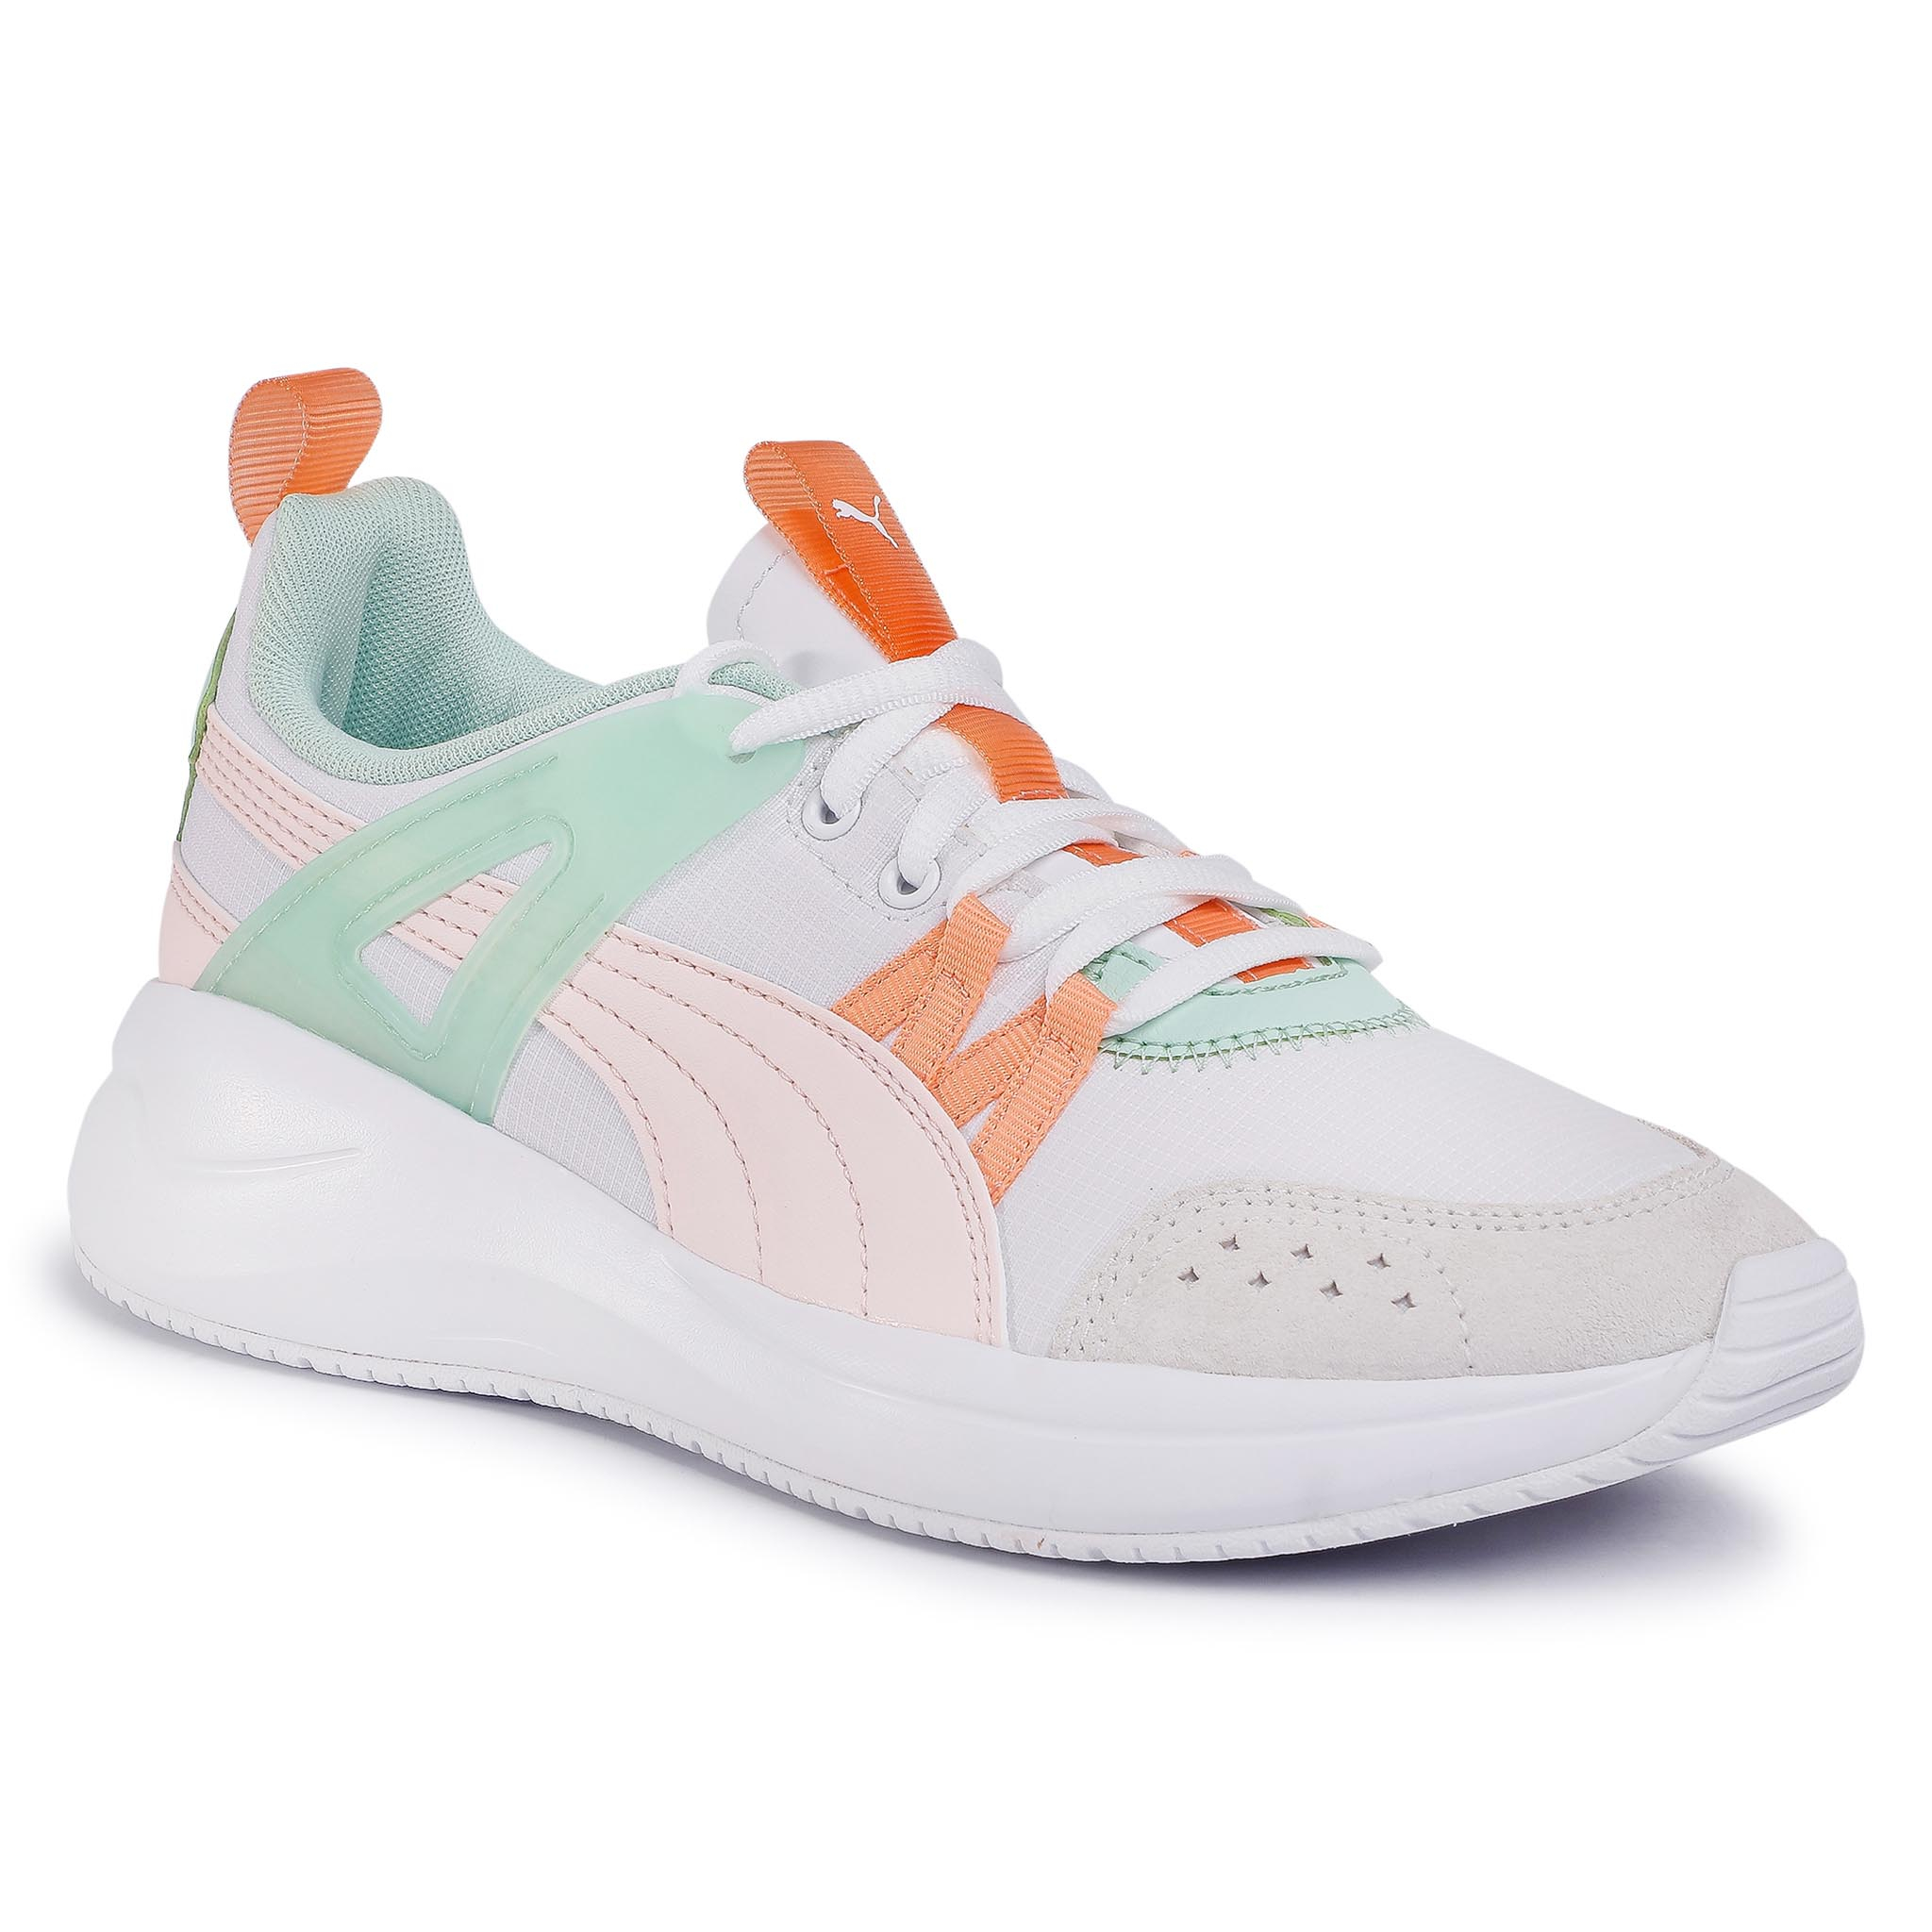 Sneakers PUMA - Nuage Run Cage 372708 01 Rosewater/Mist Green